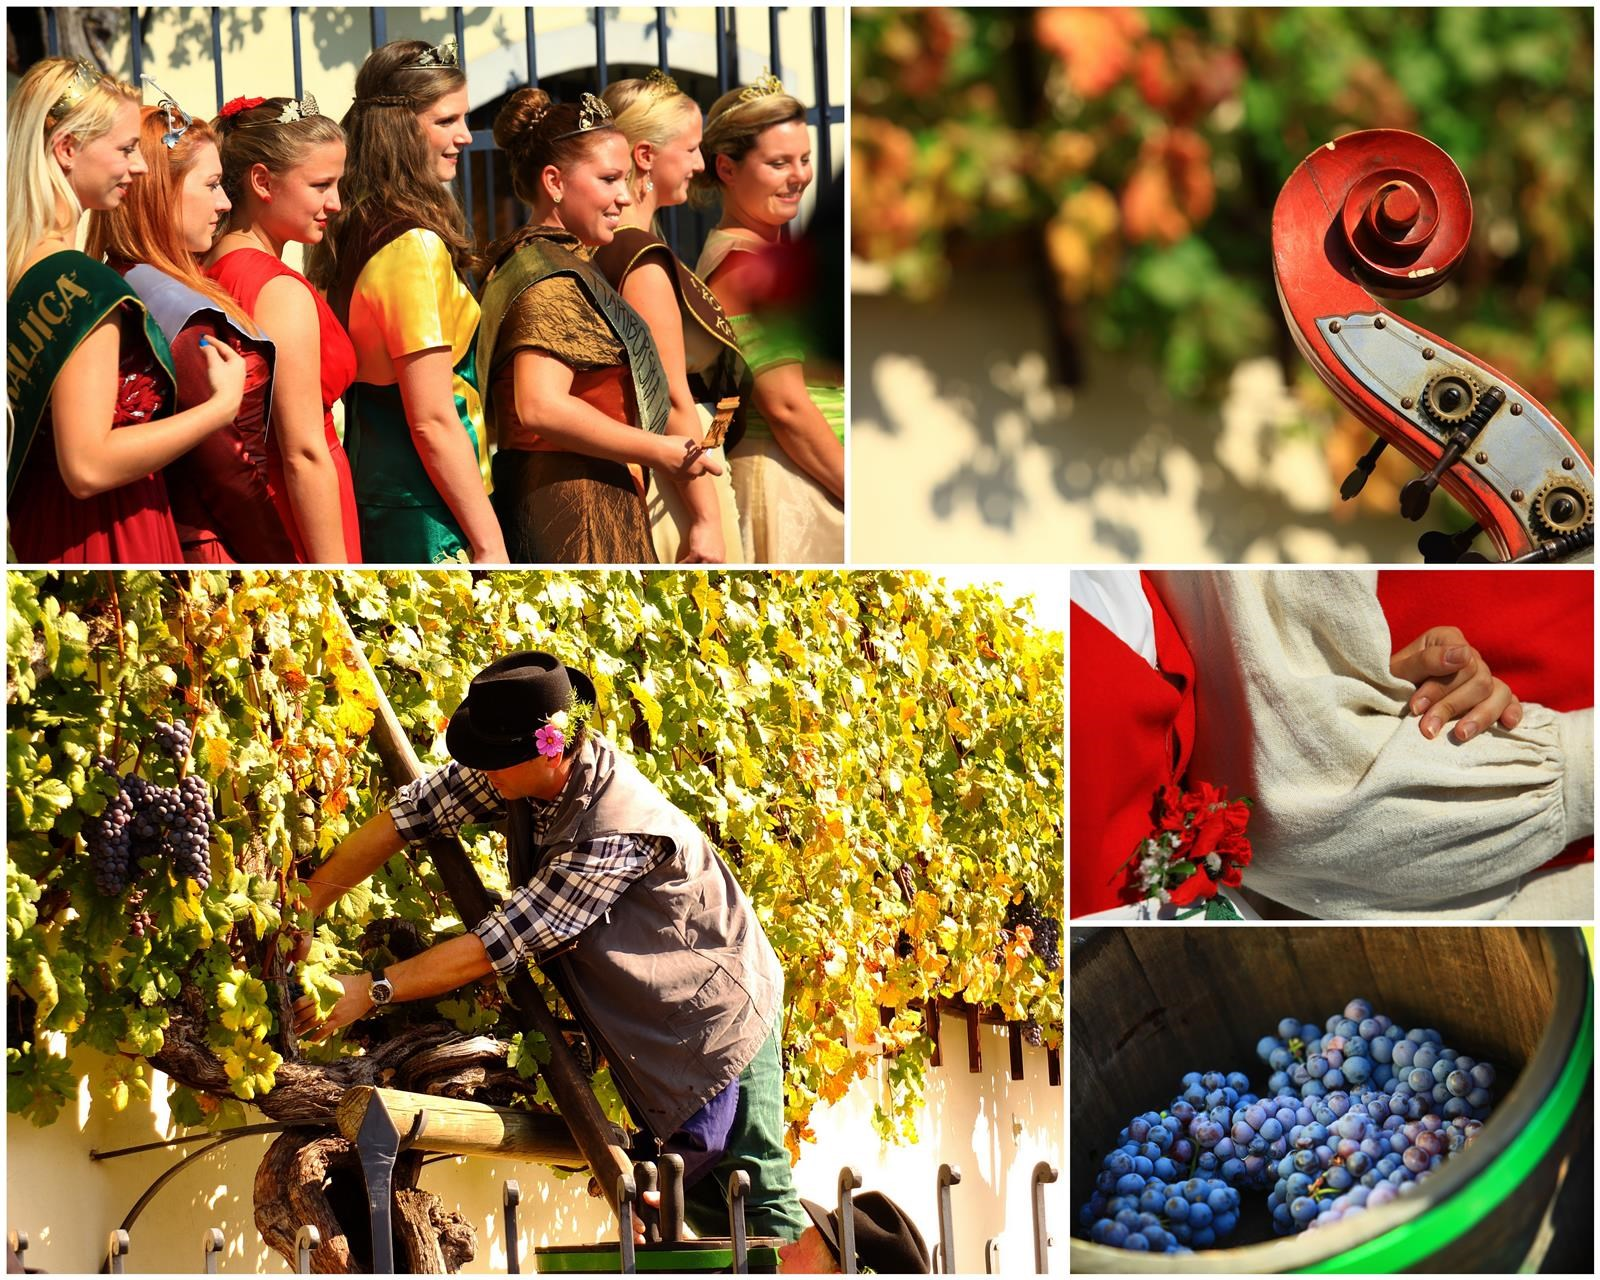 The ceremonious grape harvest of the oldest vine in the world